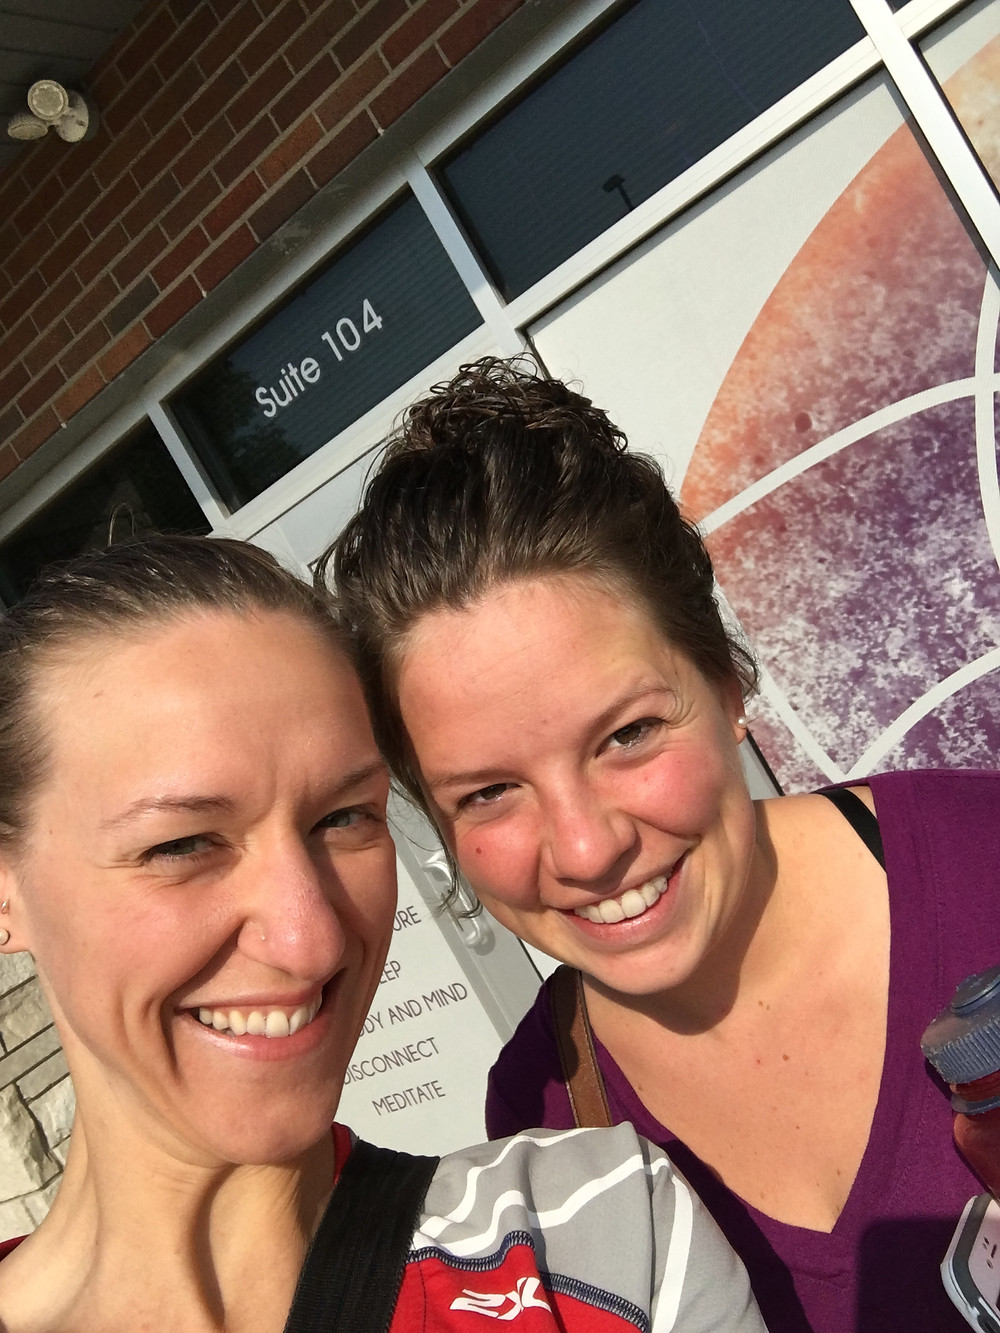 My good friend Emily and I, who checked out the center (Emily is a super amazing massage therapist in Pella)